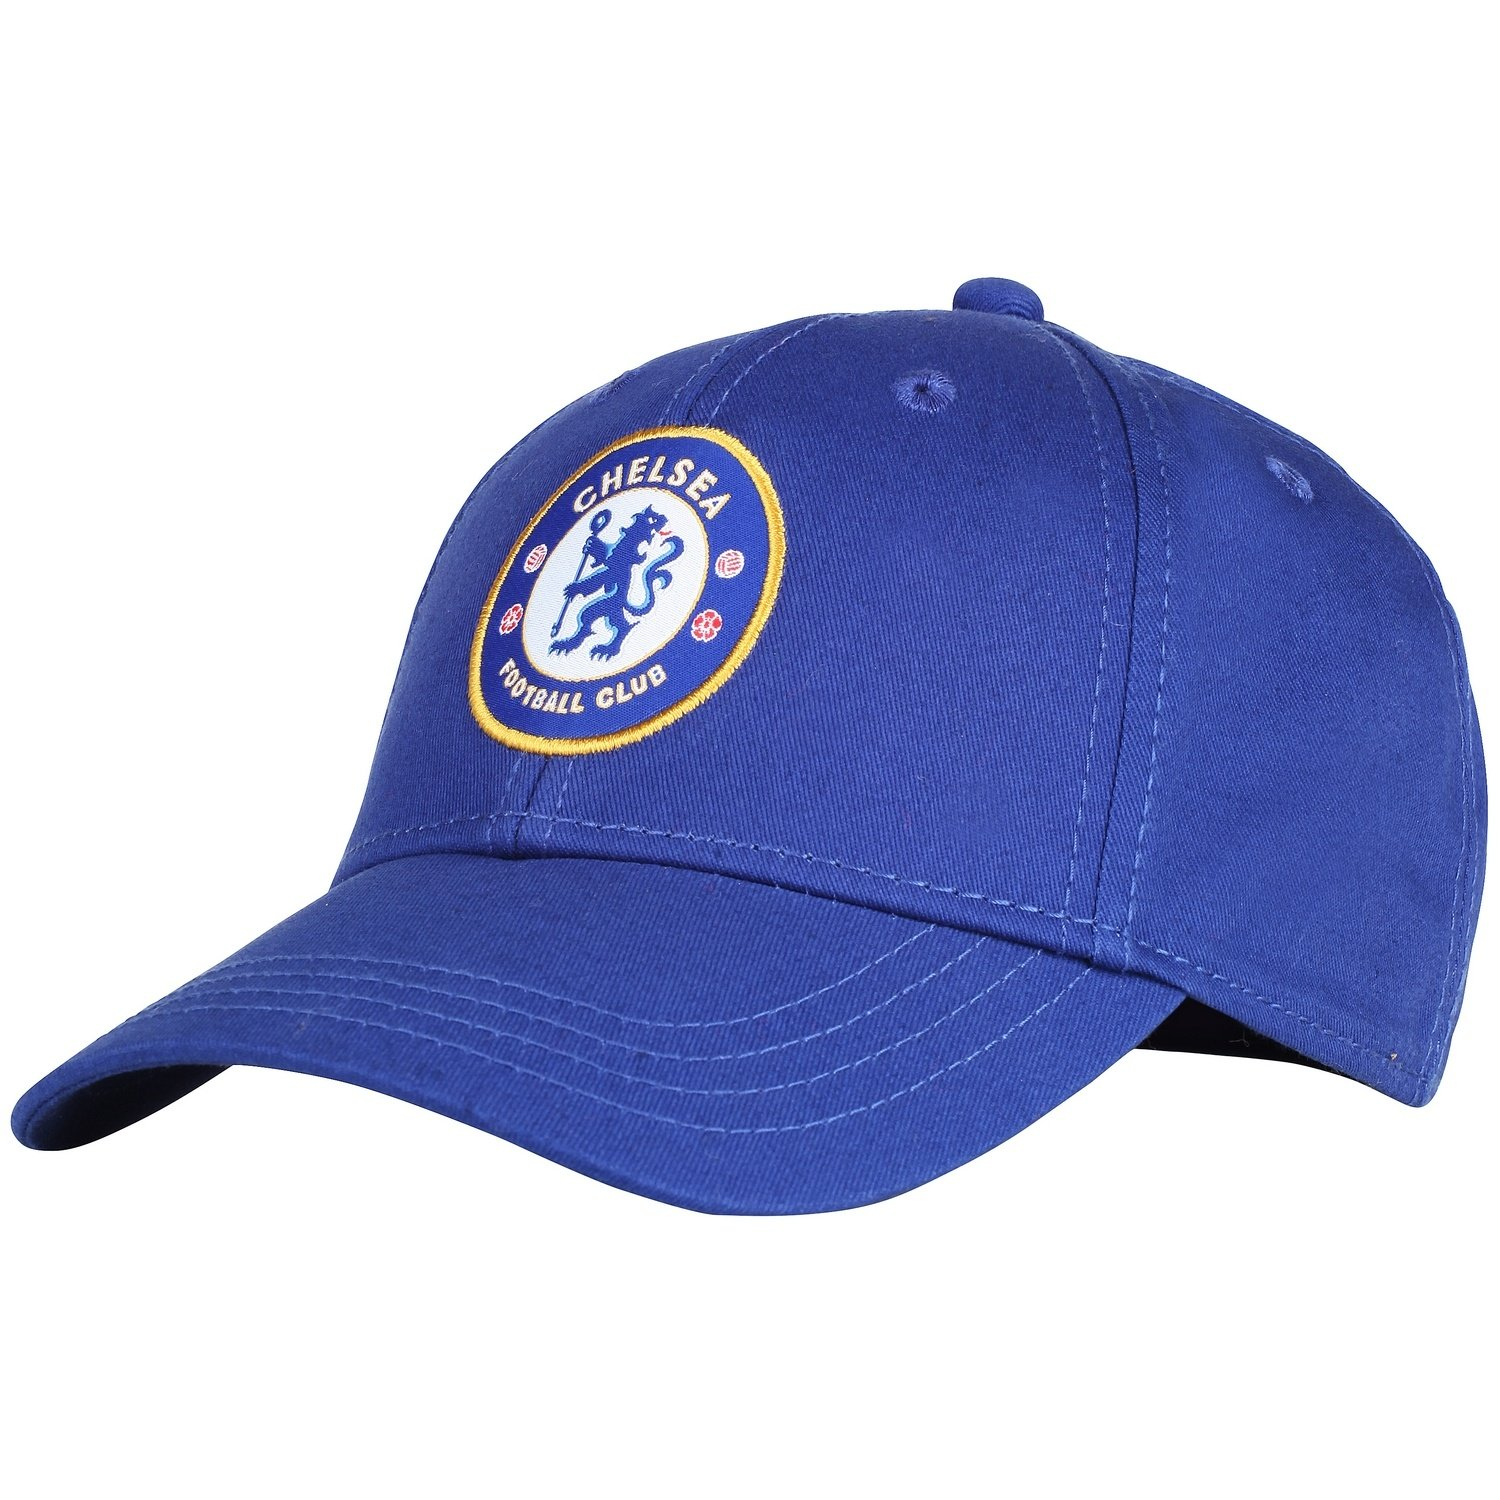 Amazon.com  Official Soccer Merchandise Adult Chelsea FC Core Baseball Cap  (One Size) (Royal Blue)  Clothing f675fbc4b5e